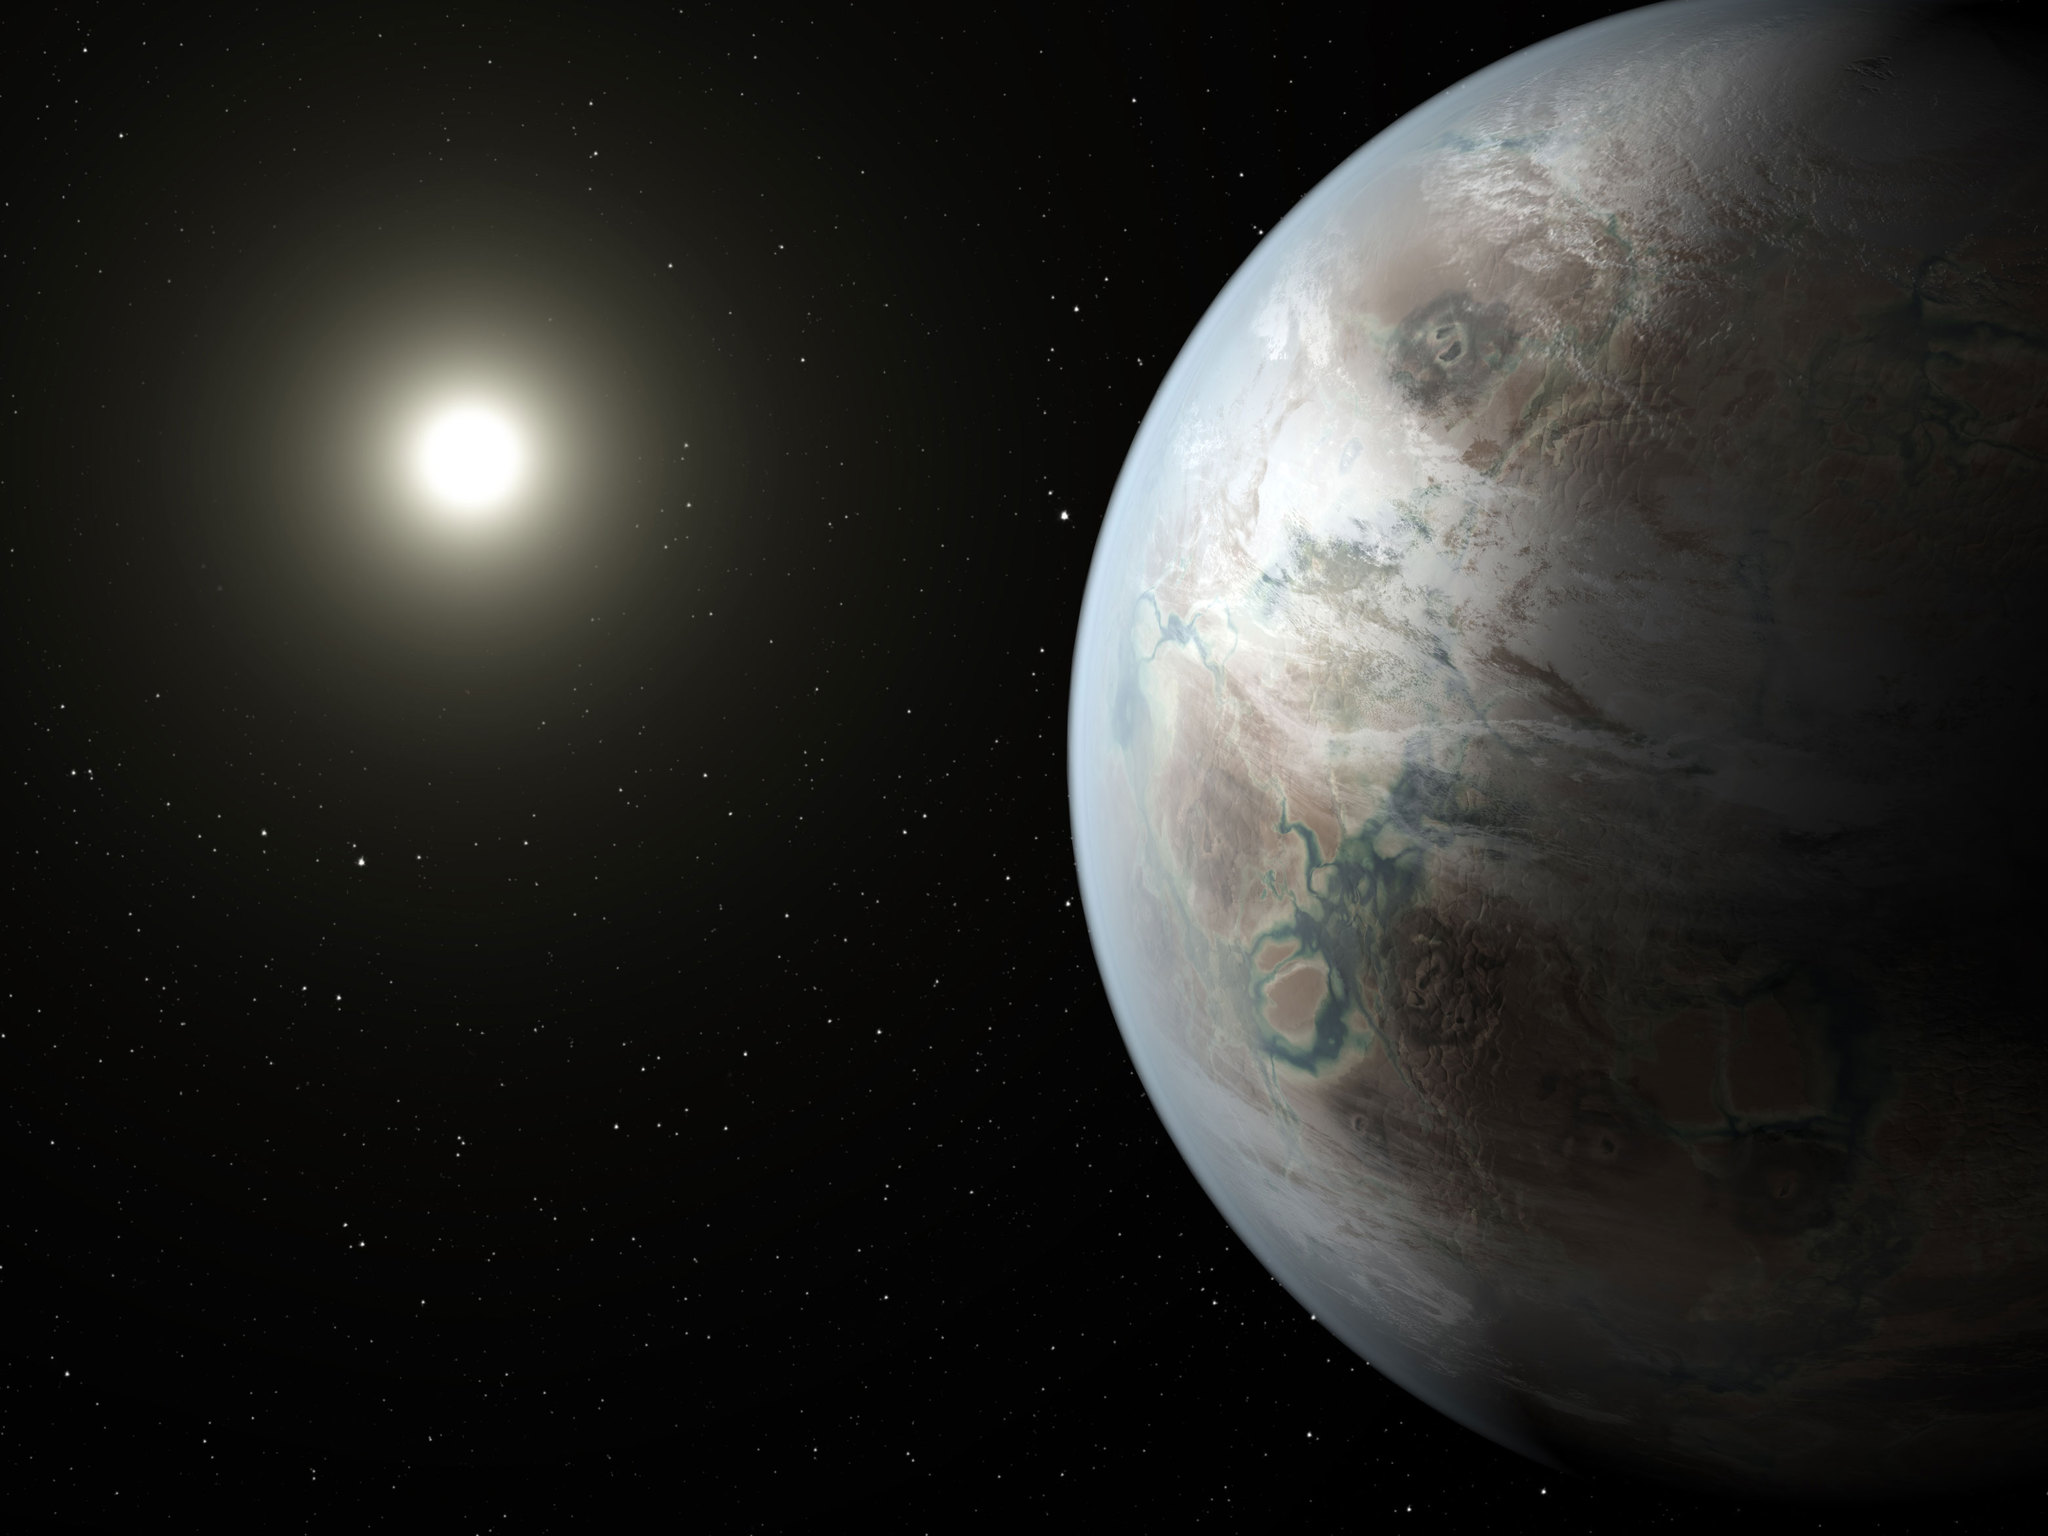 An artist's conception of planet Kepler-452b, the first near-Earth-sized world to be found in the habitable zone of a star that is similar to our sun. Image credit: NASA Ames/JPL-Caltech/T. Pyle